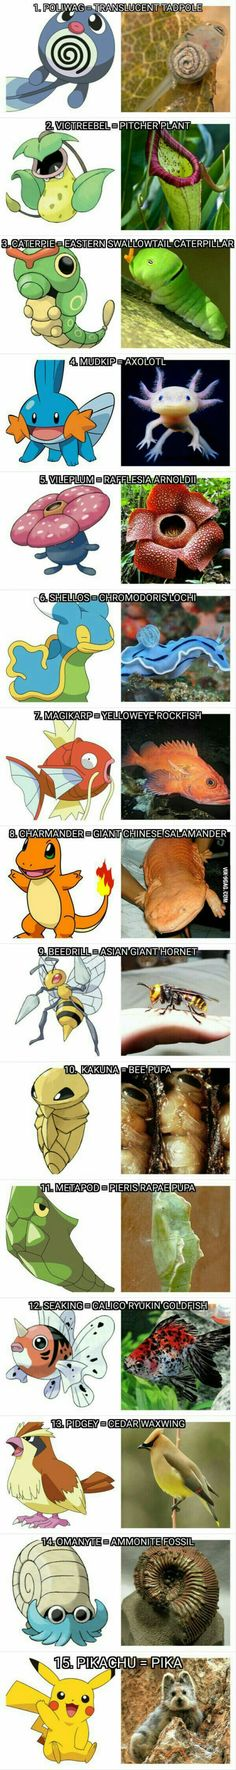 The real animals pokemon are based on